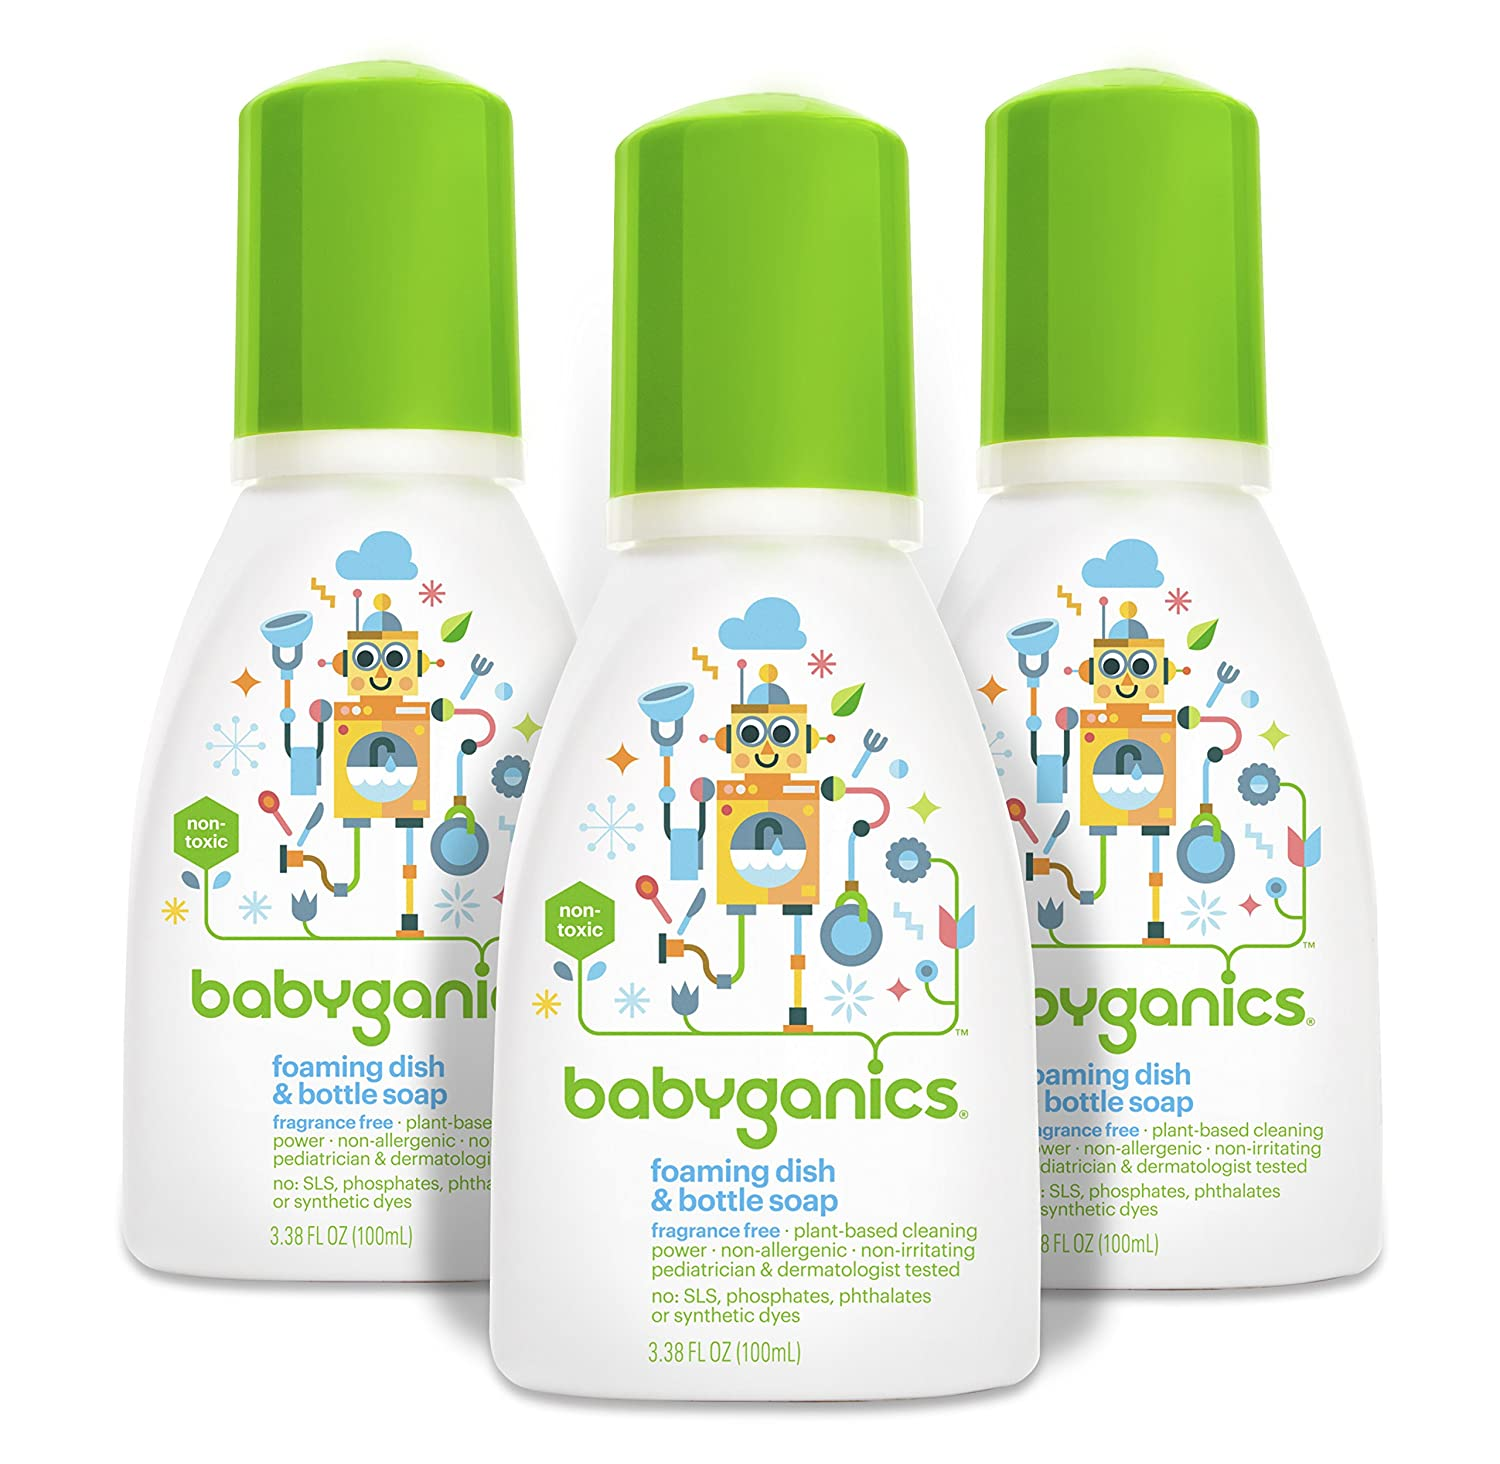 Babyganics Foaming Dish and Bottle Soap, Fragrance Free, On-The-Go 100ml, 3.38 oz. (Pack of 3), Packaging May Vary BG-183